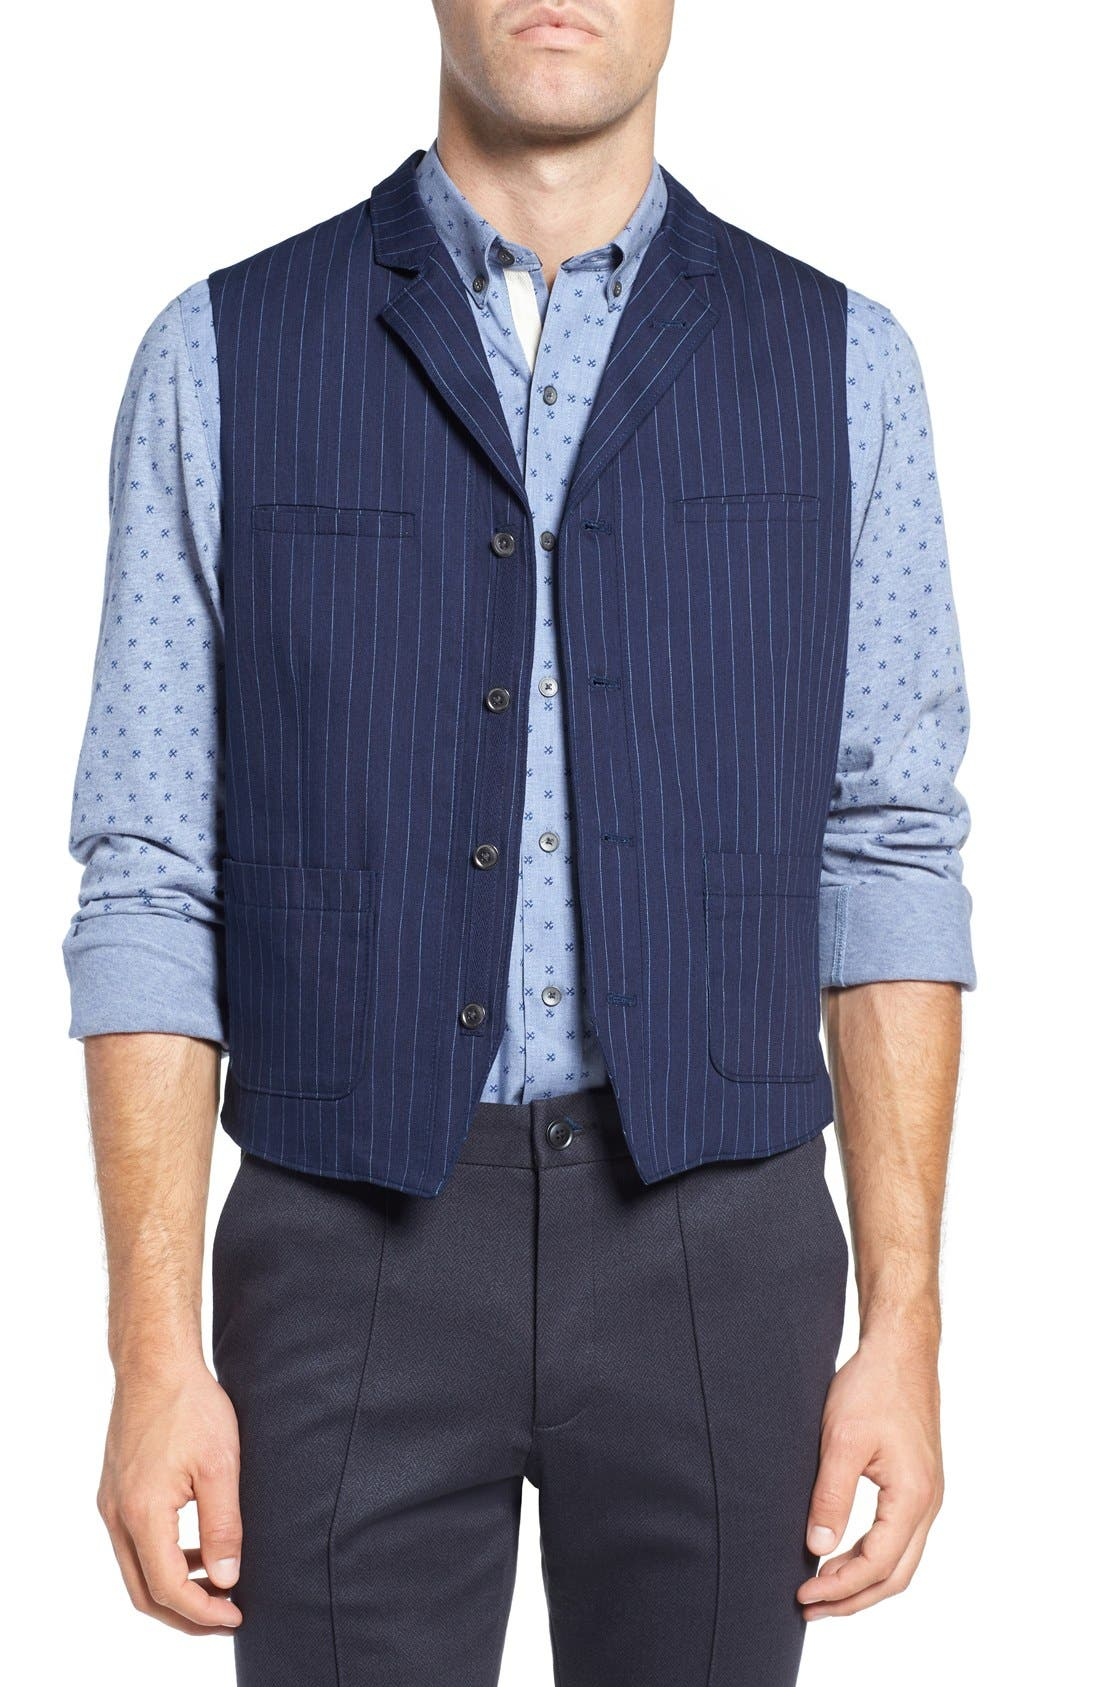 Windsor Pinstripe Cotton Twill Vest,                         Main,                         color, Navy